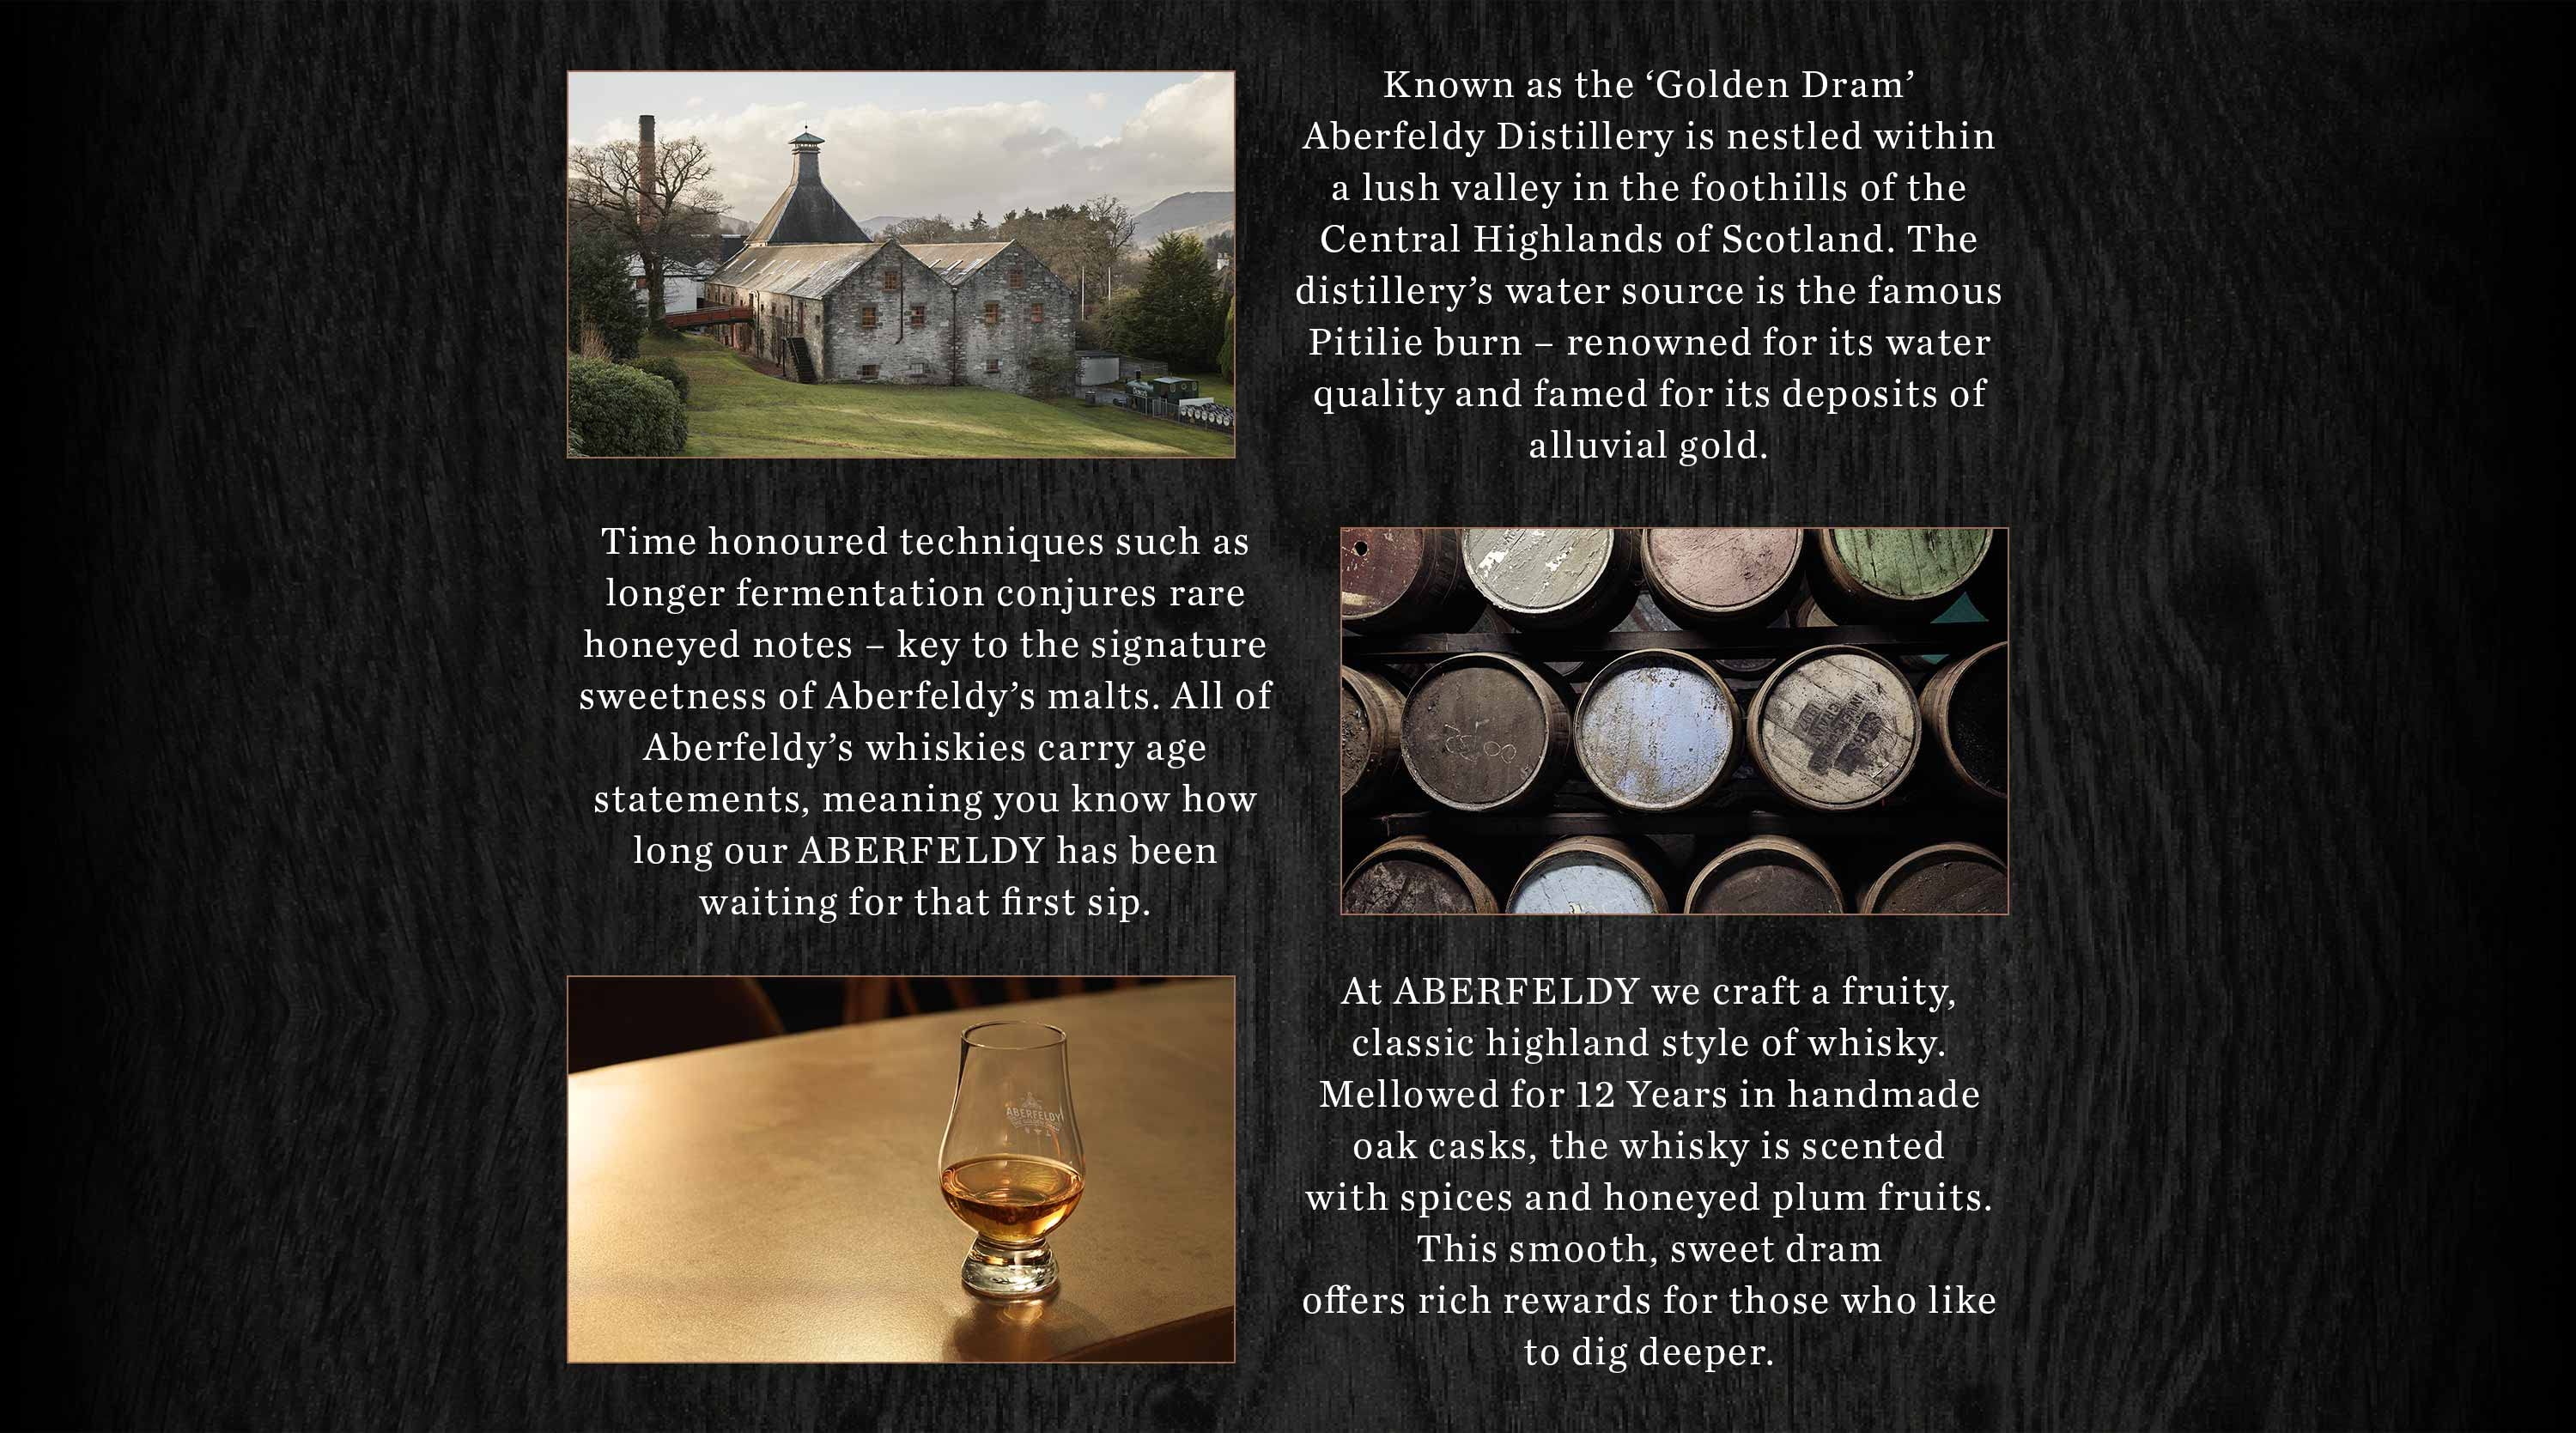 Known as the 'Golden Dram'Aberfeldy Distillery is nestled within a lush valley in the foothills of the Central Highlands of Scotland. The distillery's water source is the famous Pitilie burn – renowned for its water quality and famed for its deposits of alluvial gold.  Time honoured techniques such as longer fermentation conjures rarehoneyed notes – key to the signature sweetness of Aberfeldy's malts. All of Aberfeldy's whiskies carry agestatements, meaning you know how long our Aberfeldy has been waiting for that first sip.  At Aberfeldy we craft a fruity, classichighland style of whisky. Mellowed for 12 Years in handmade oak casks, the whisky is scented with spices andhoneyed plump fruits. This smooth, sweet dram offers rich rewards for those who like to dig deeper.